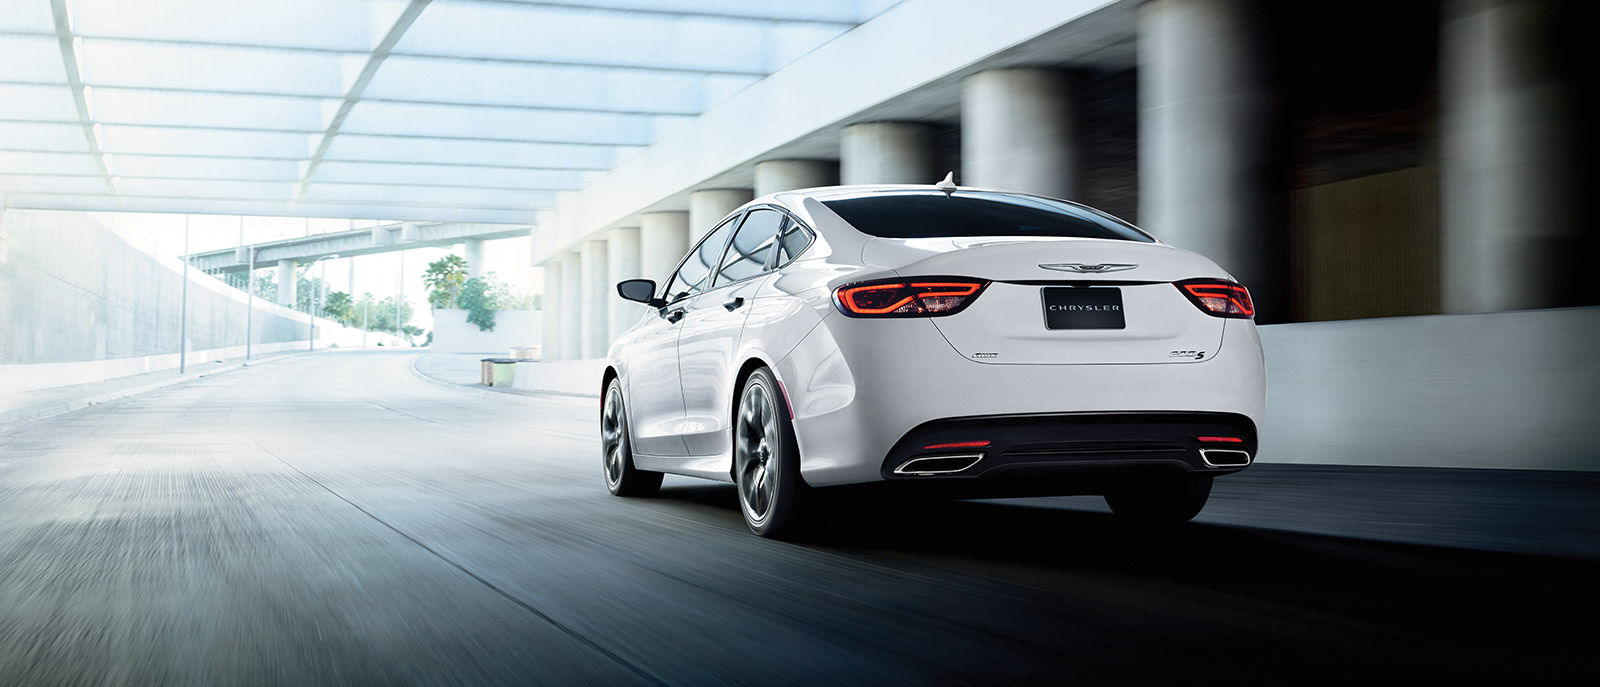 2016 Chrysler 200 Stylish Exterior Rear